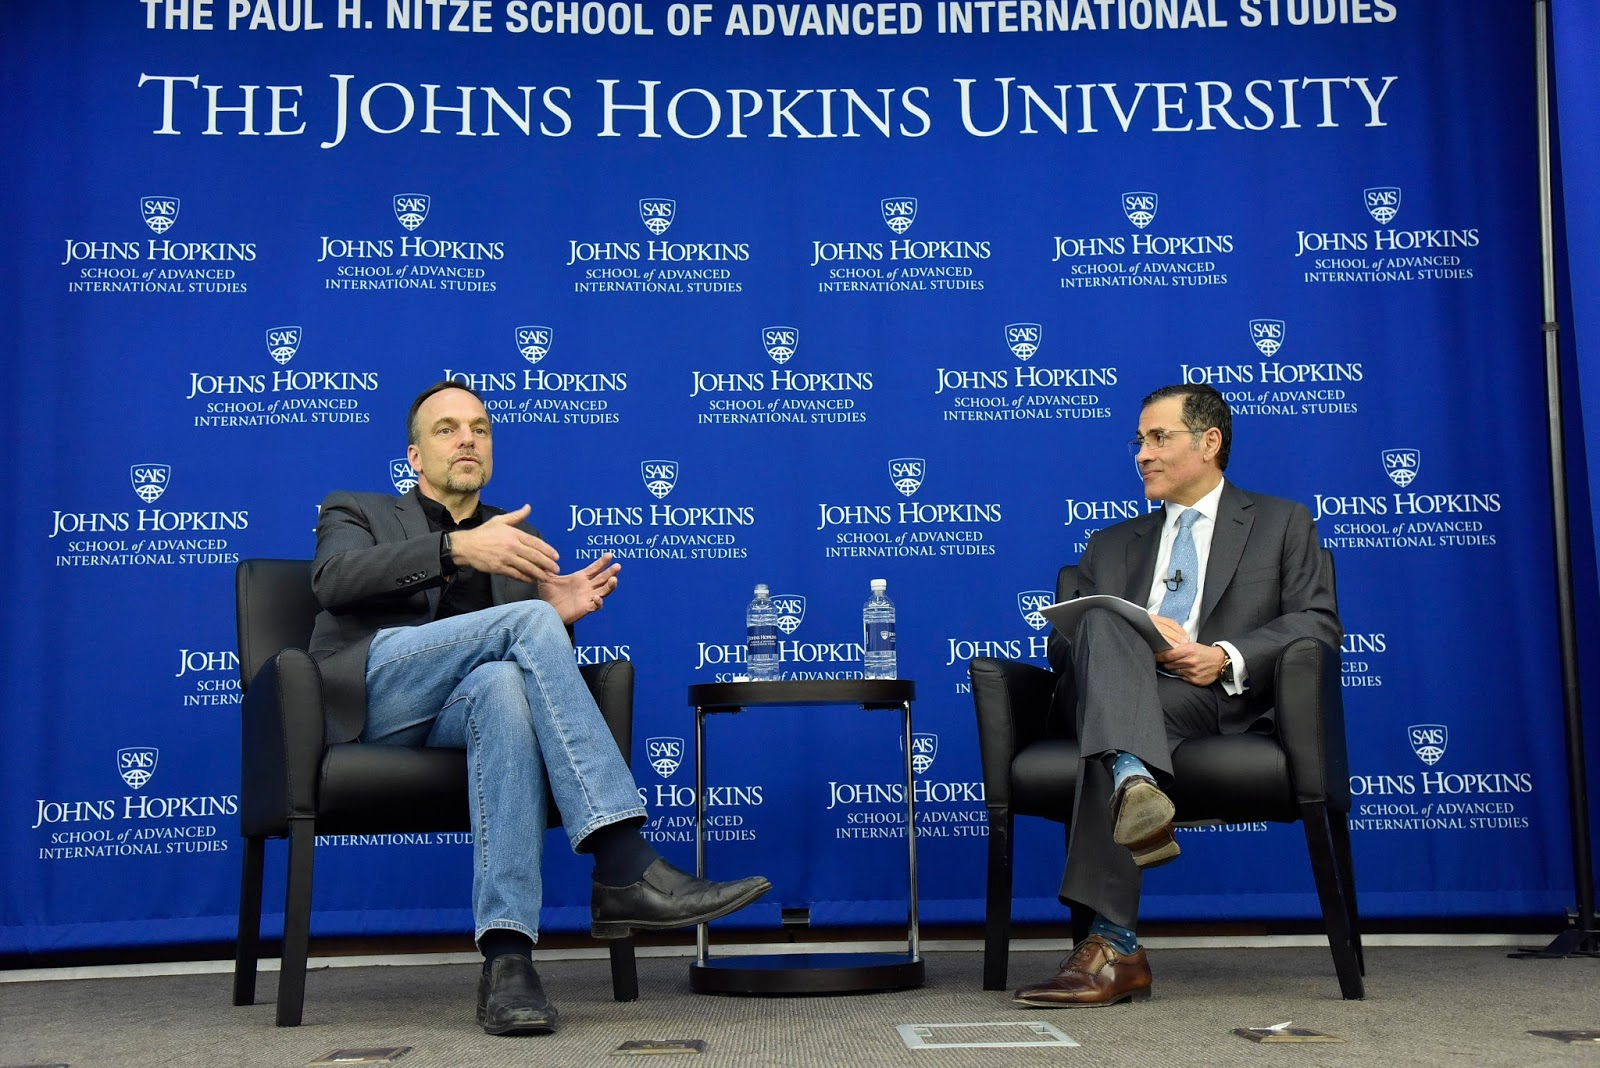 johns hopkins sais washington admissions blog rh saisdcadmissions blogspot com Hopkins Club JHU Johns Hopkins Associationd